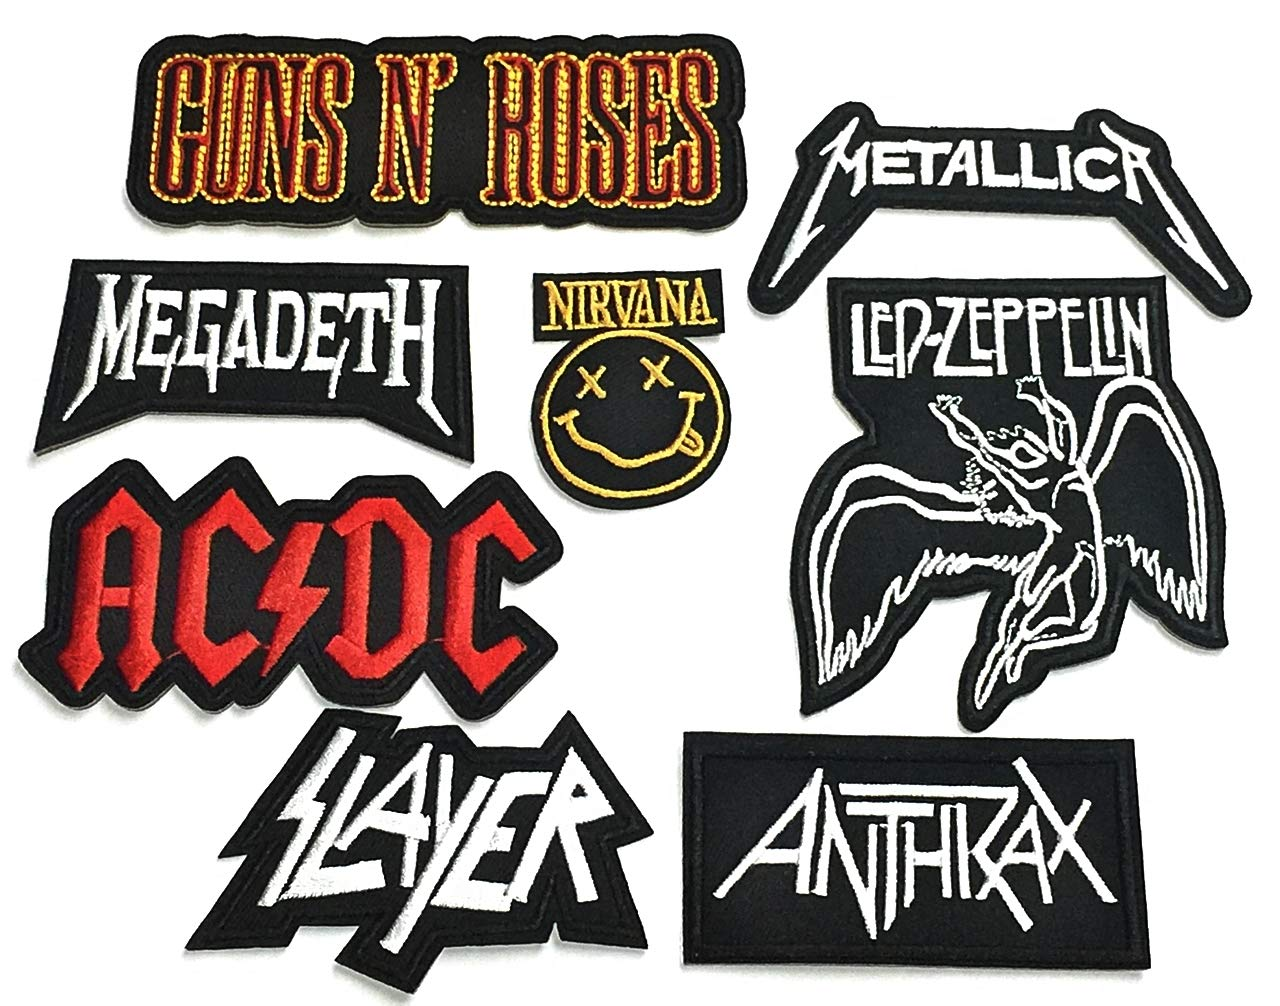 Set Patch of Iron on Patches#16,Guns n Roses Rock Band Patch,AC DC ACDC Patch,Led Zeppelin Patch,Metallica Patch,Nirvana Patch,Slayer Patch,Megadeth Patch,Anthrax Heavy Metal by BossBee Thailand